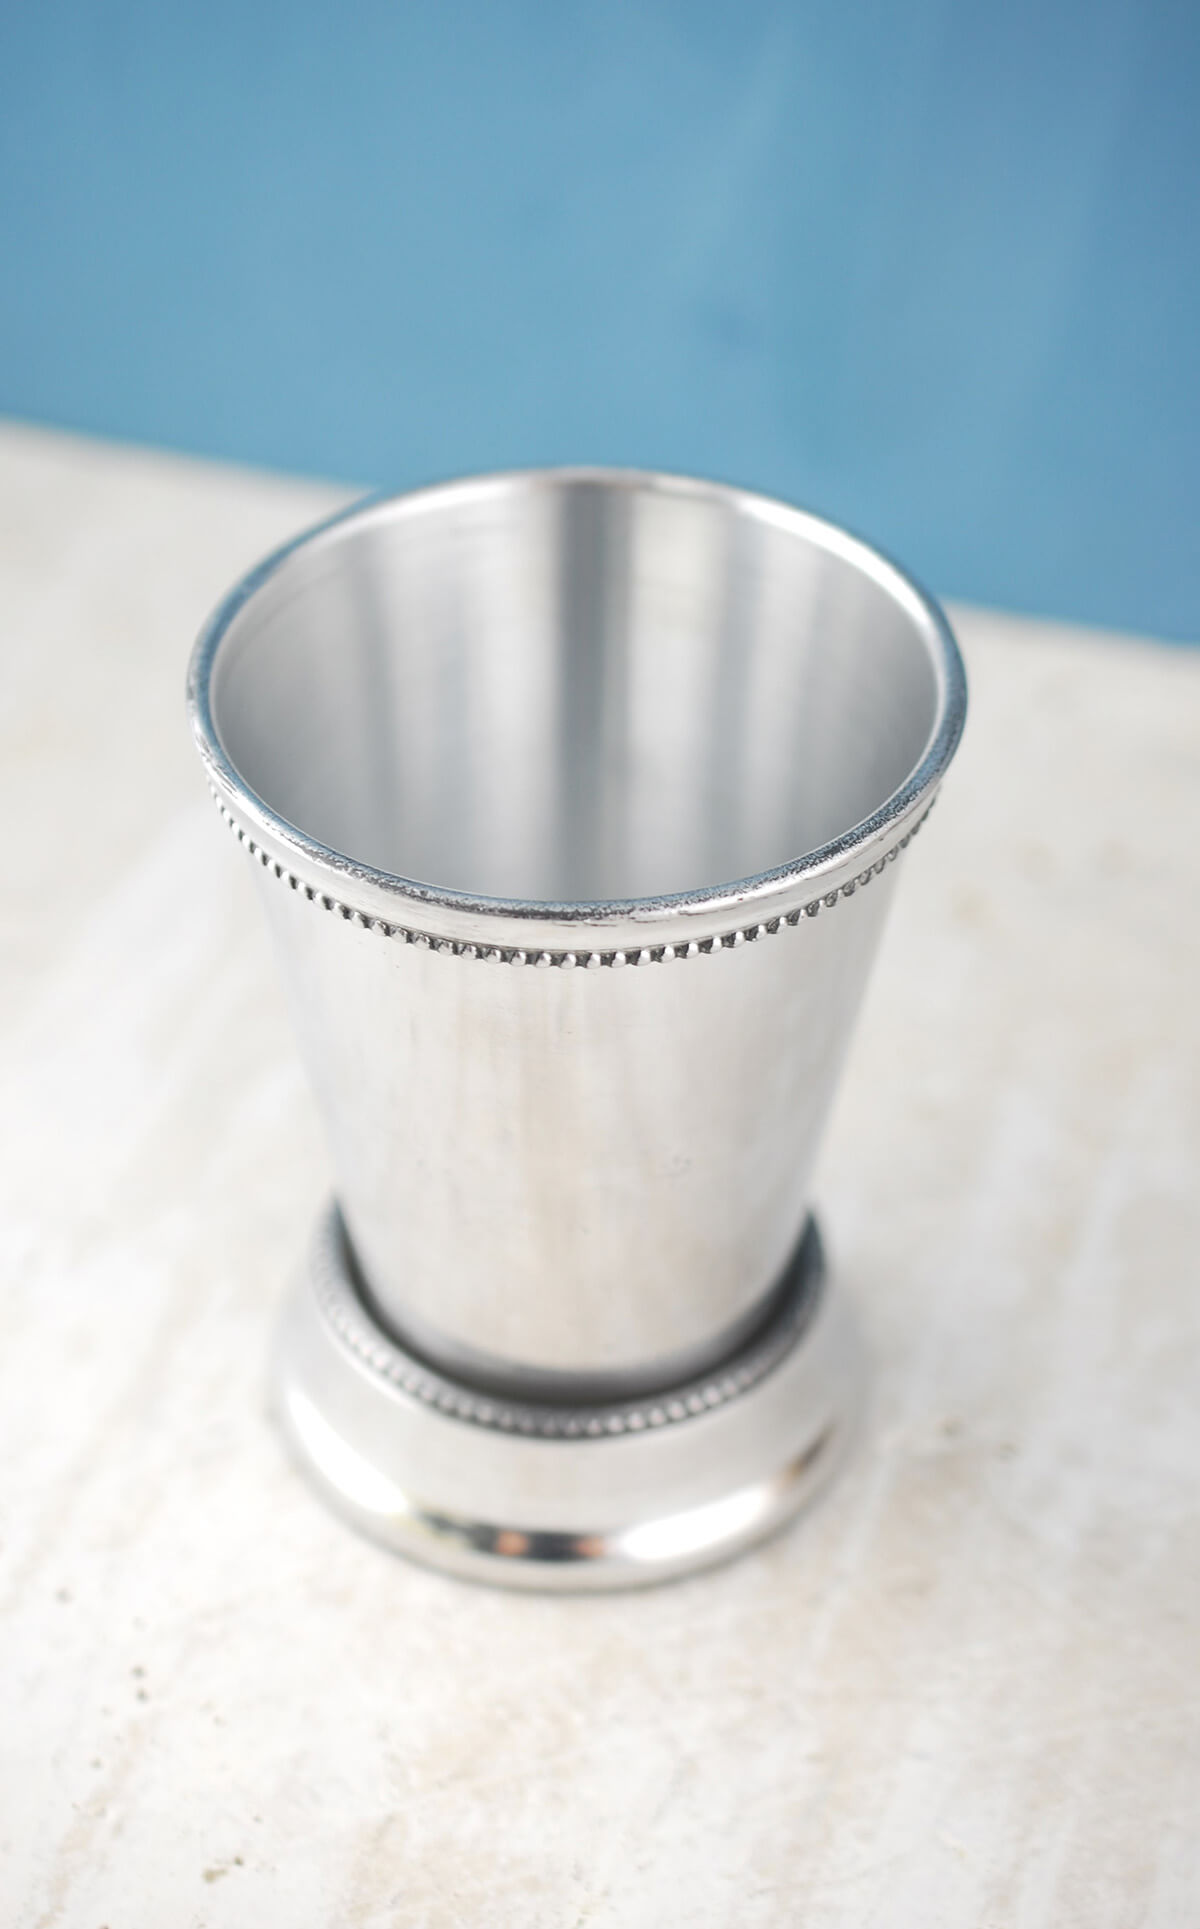 Mint julep cups 425in 4 mint julep cups 425in reviewsmspy